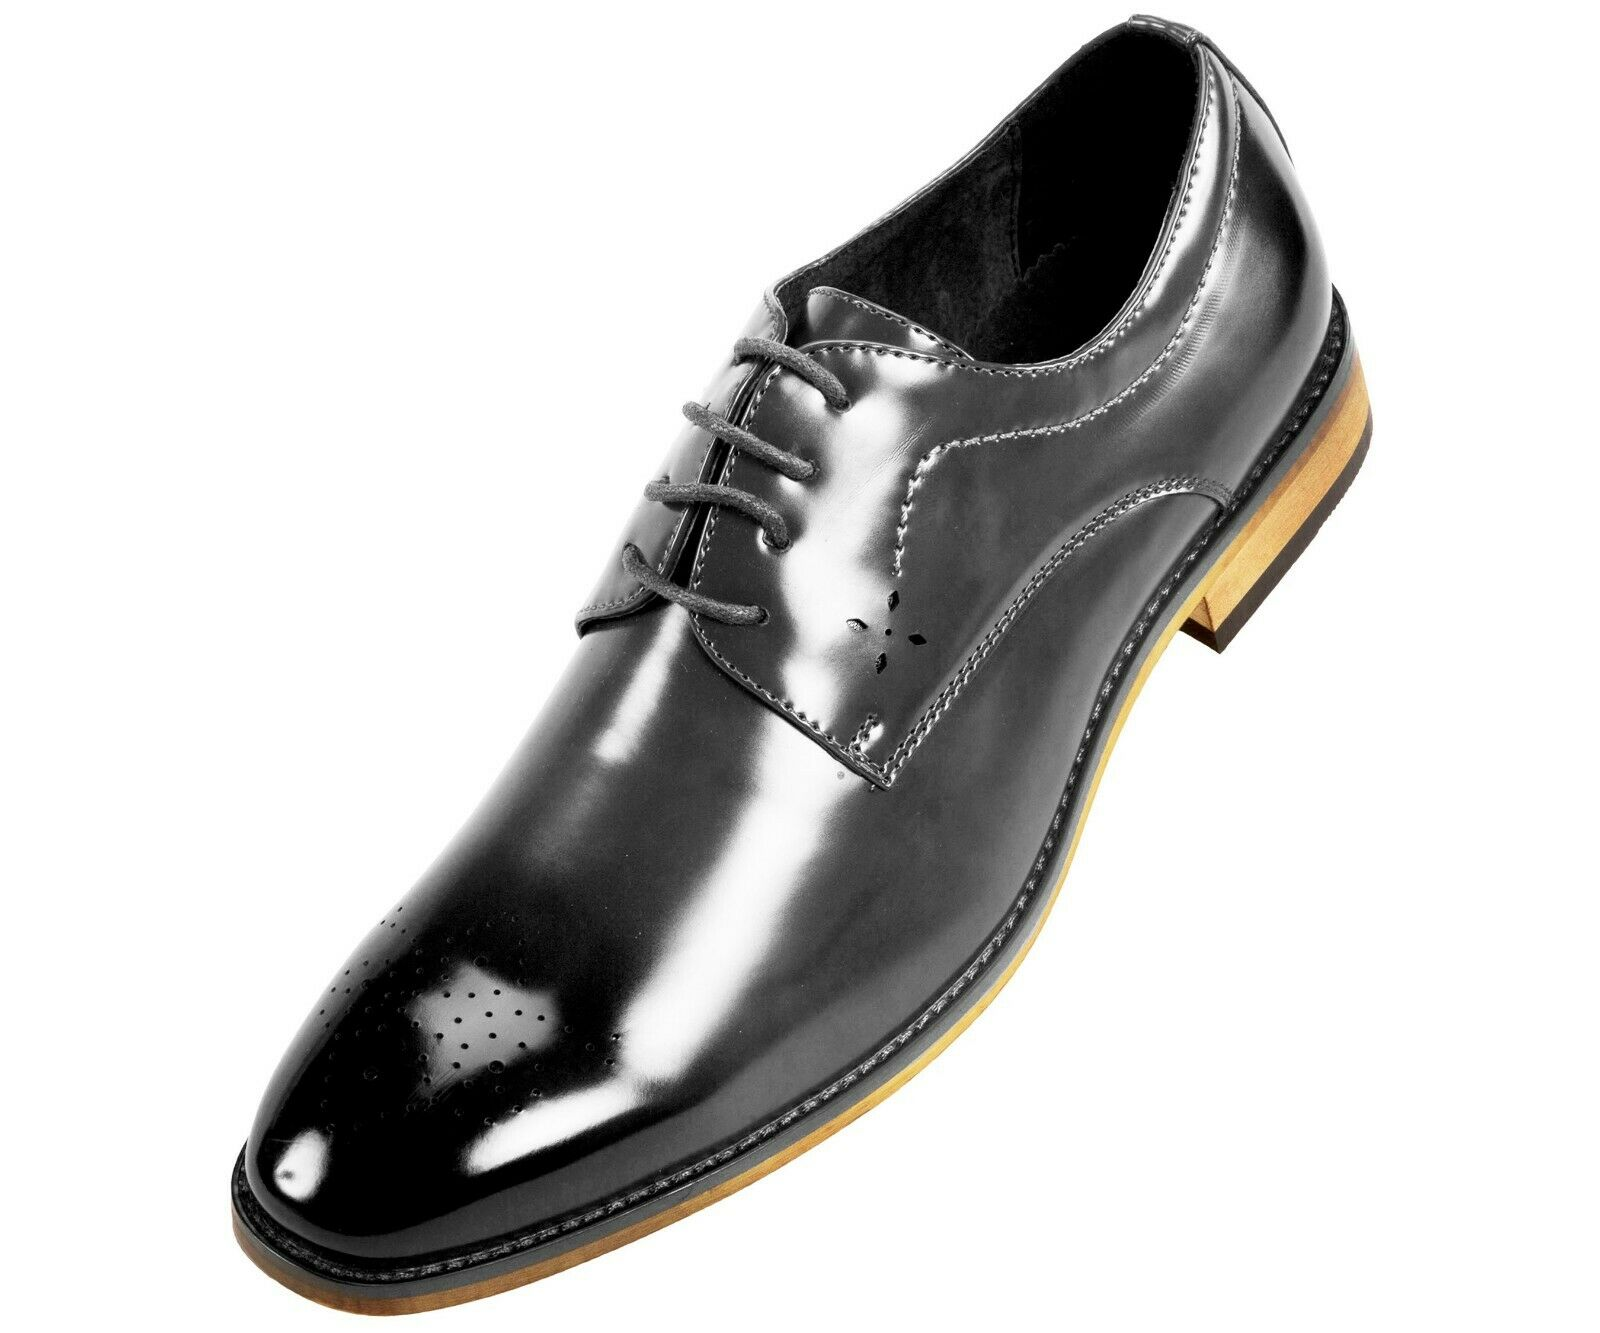 Amali Smooth Burnished Derby w/ Perforated Toe Men's Dress Shoe : Style Petfer